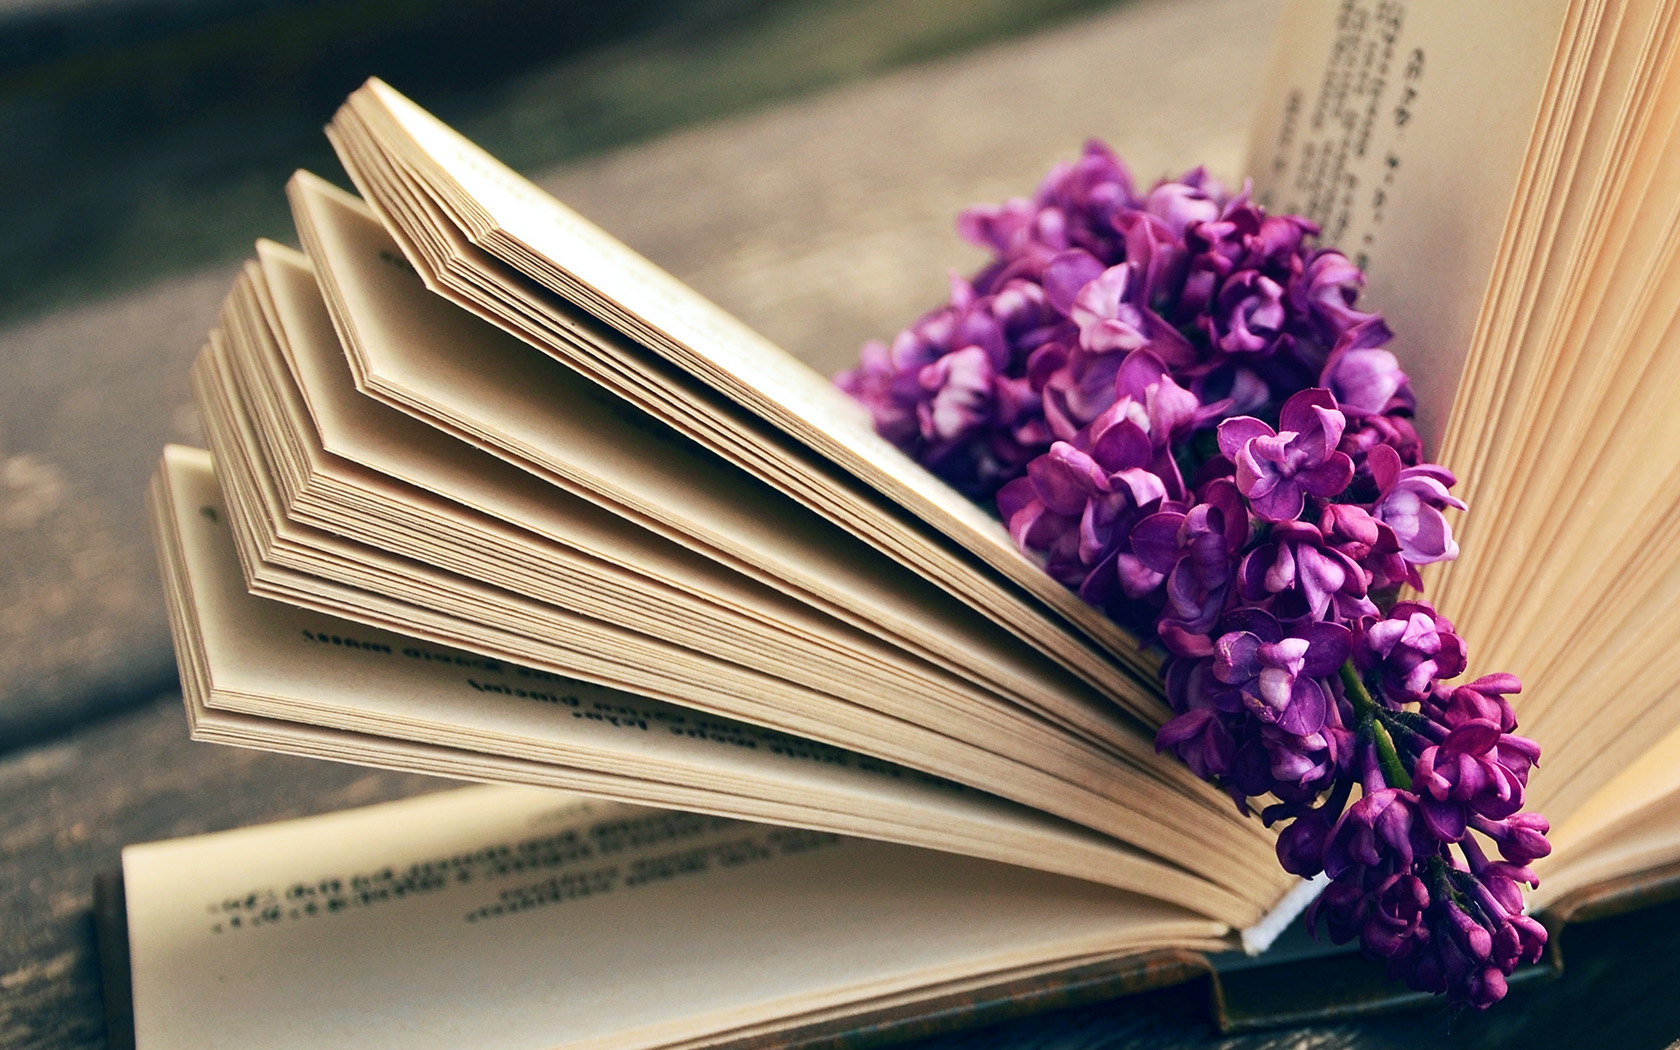 ni24-book-read-time-flower-flare-purple-wallpaper